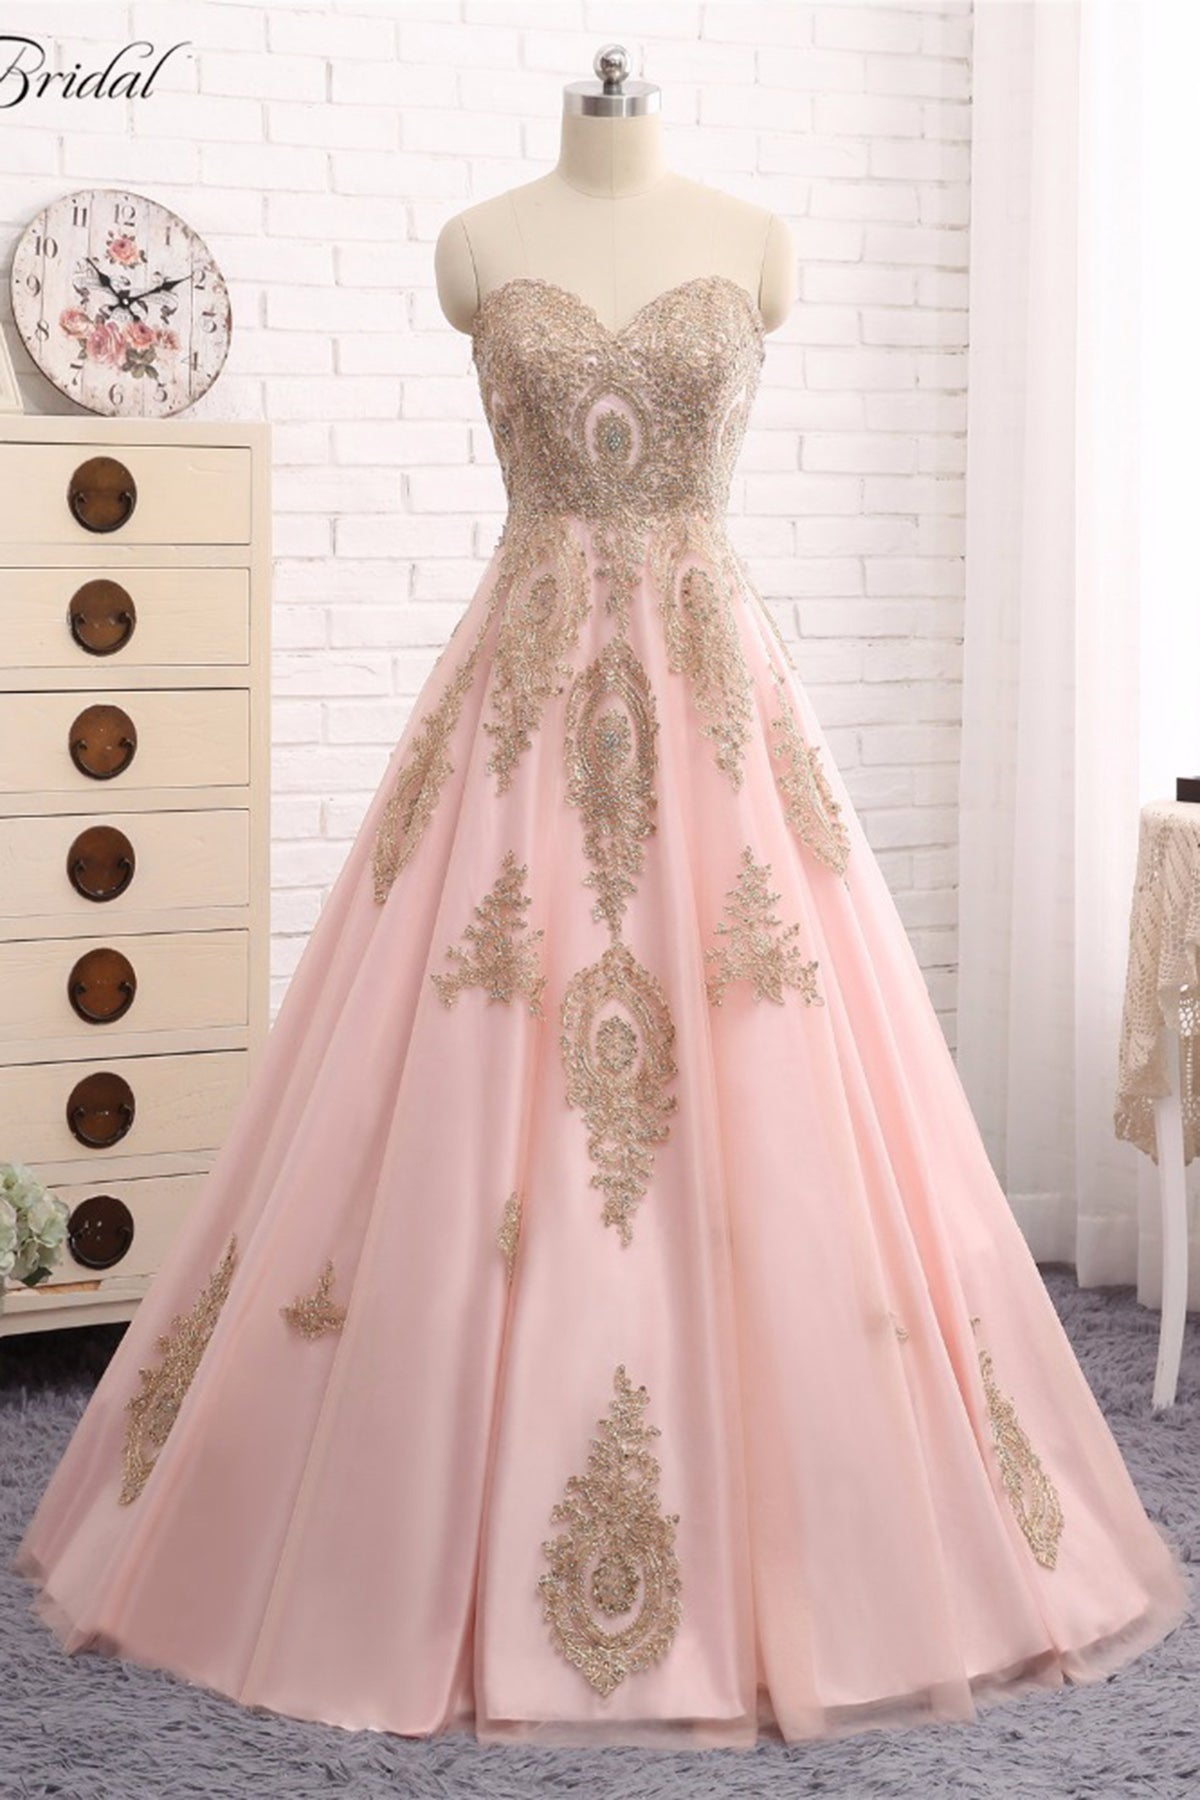 cf593ad30104 ... Tulle Long Prom Dress Gold Lace Applique Evening Gown. Touch to zoom